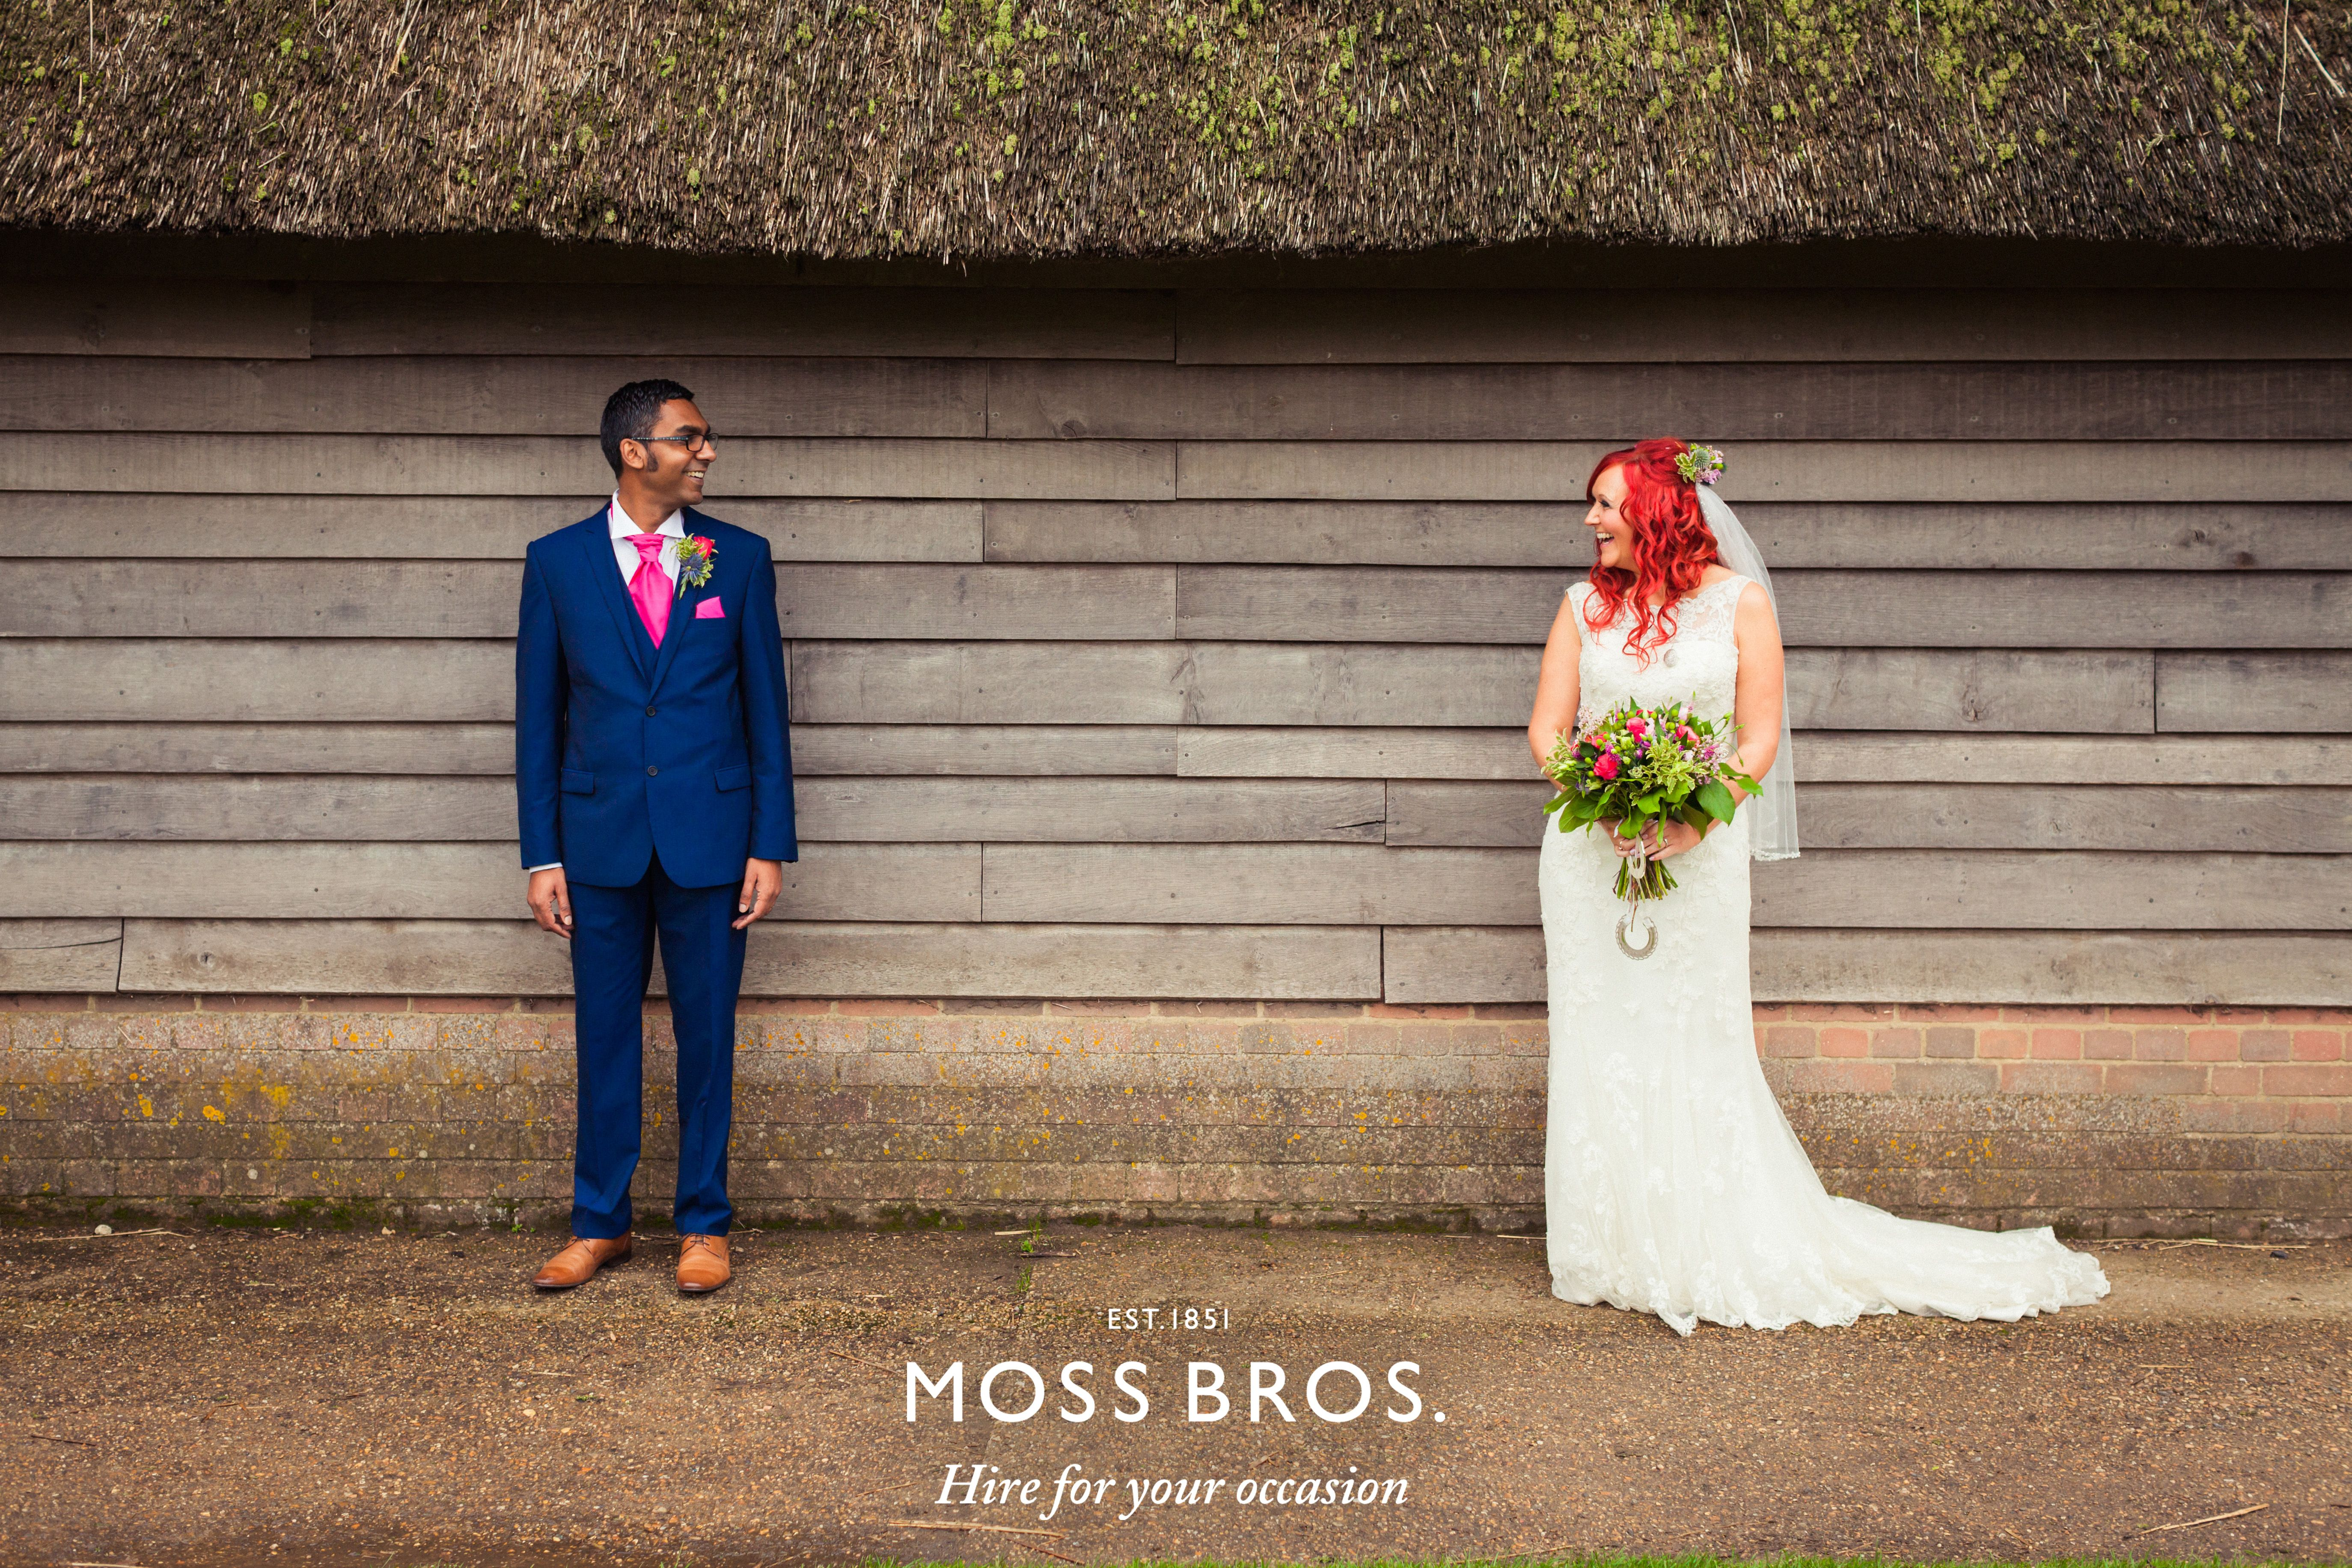 Ssbroshire hire for your occasion pinterest